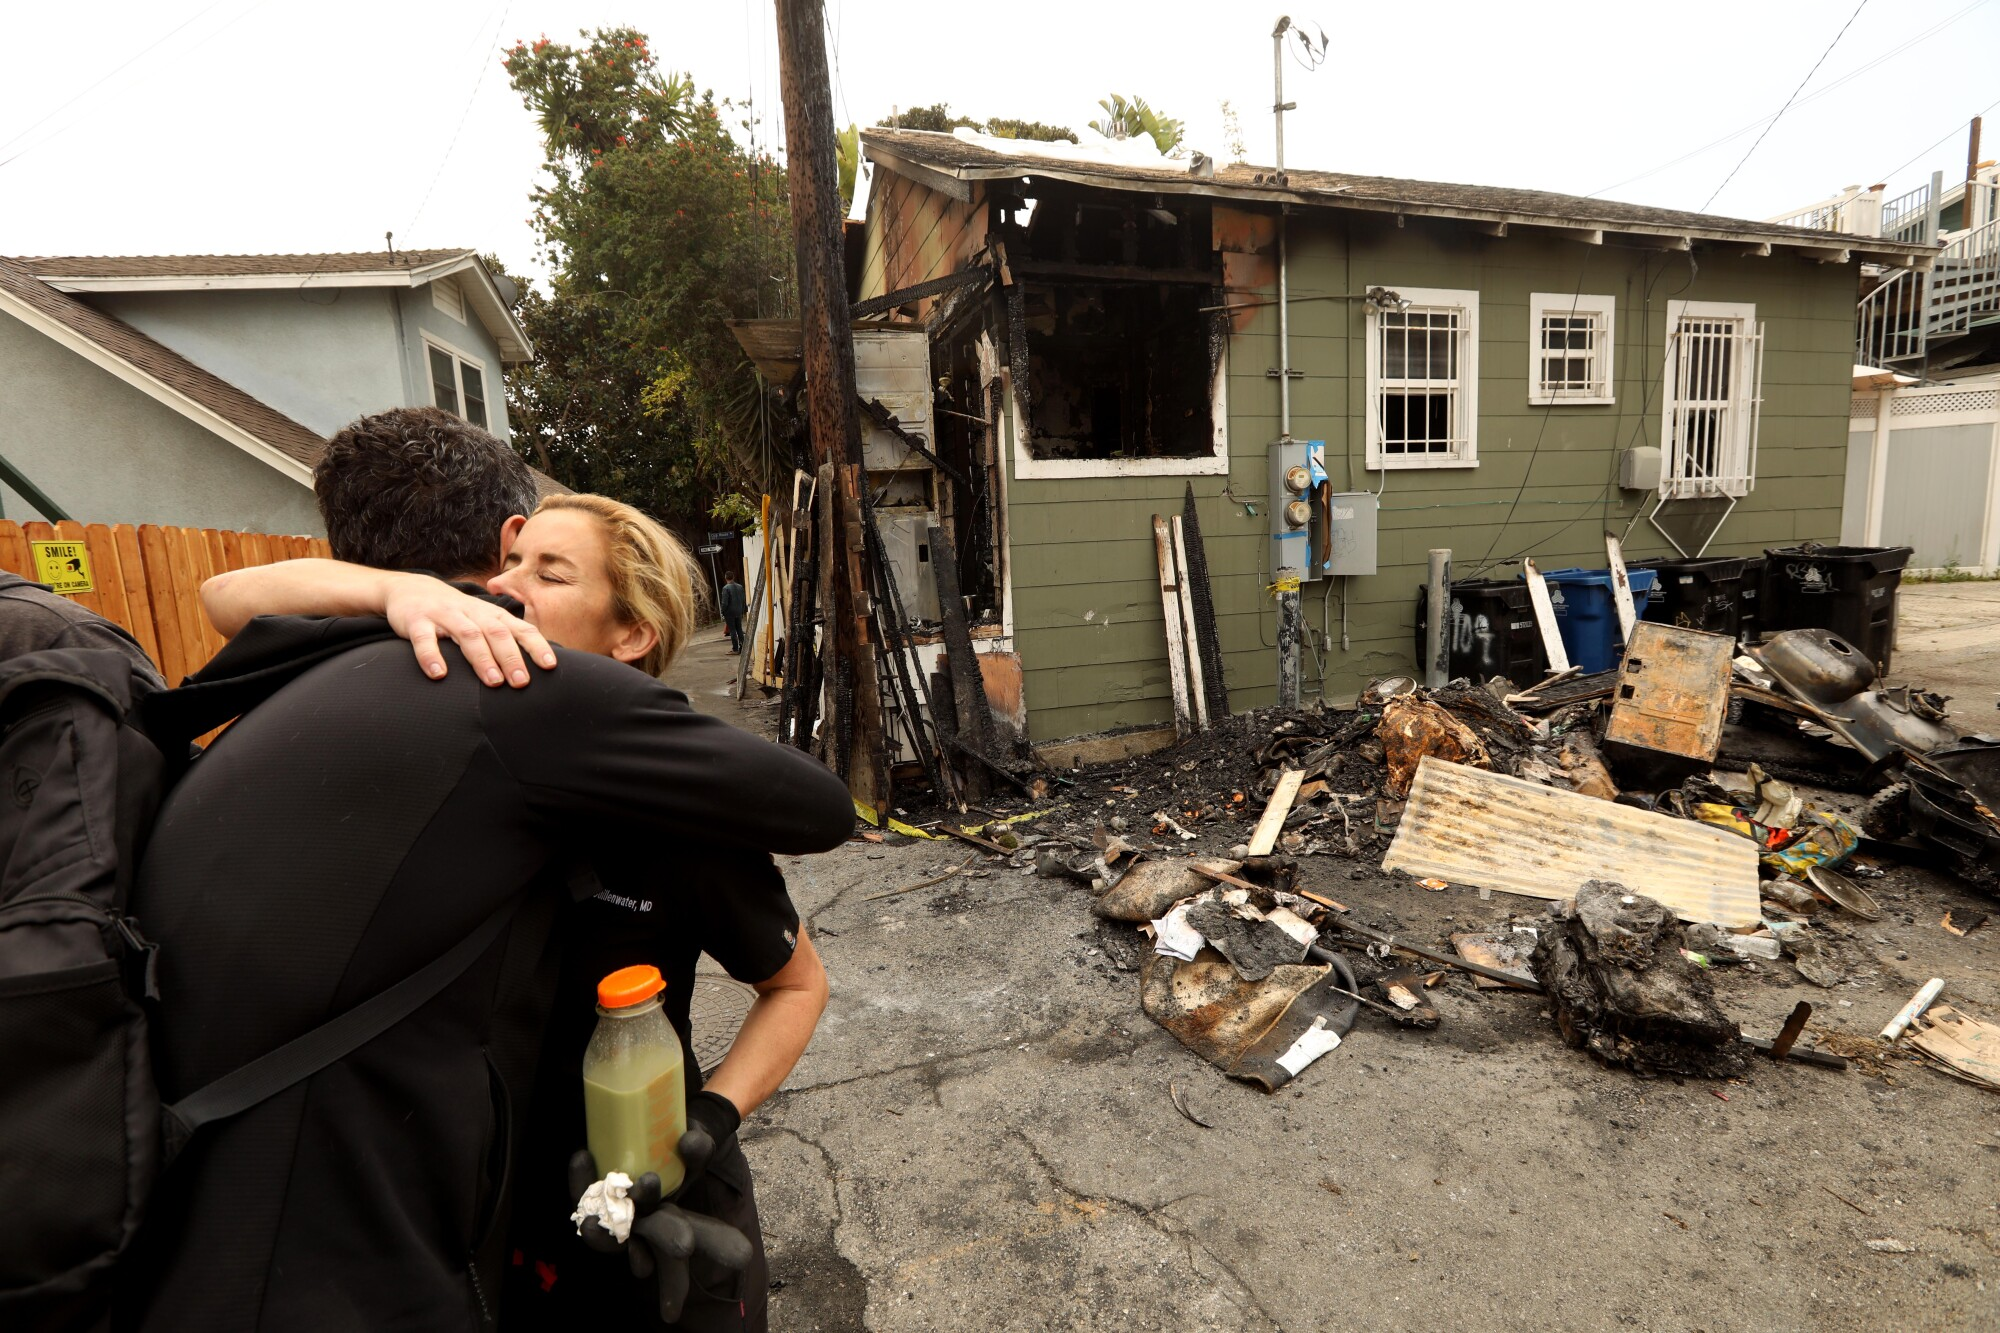 Two people hug outside out of a home with fire damage and debris